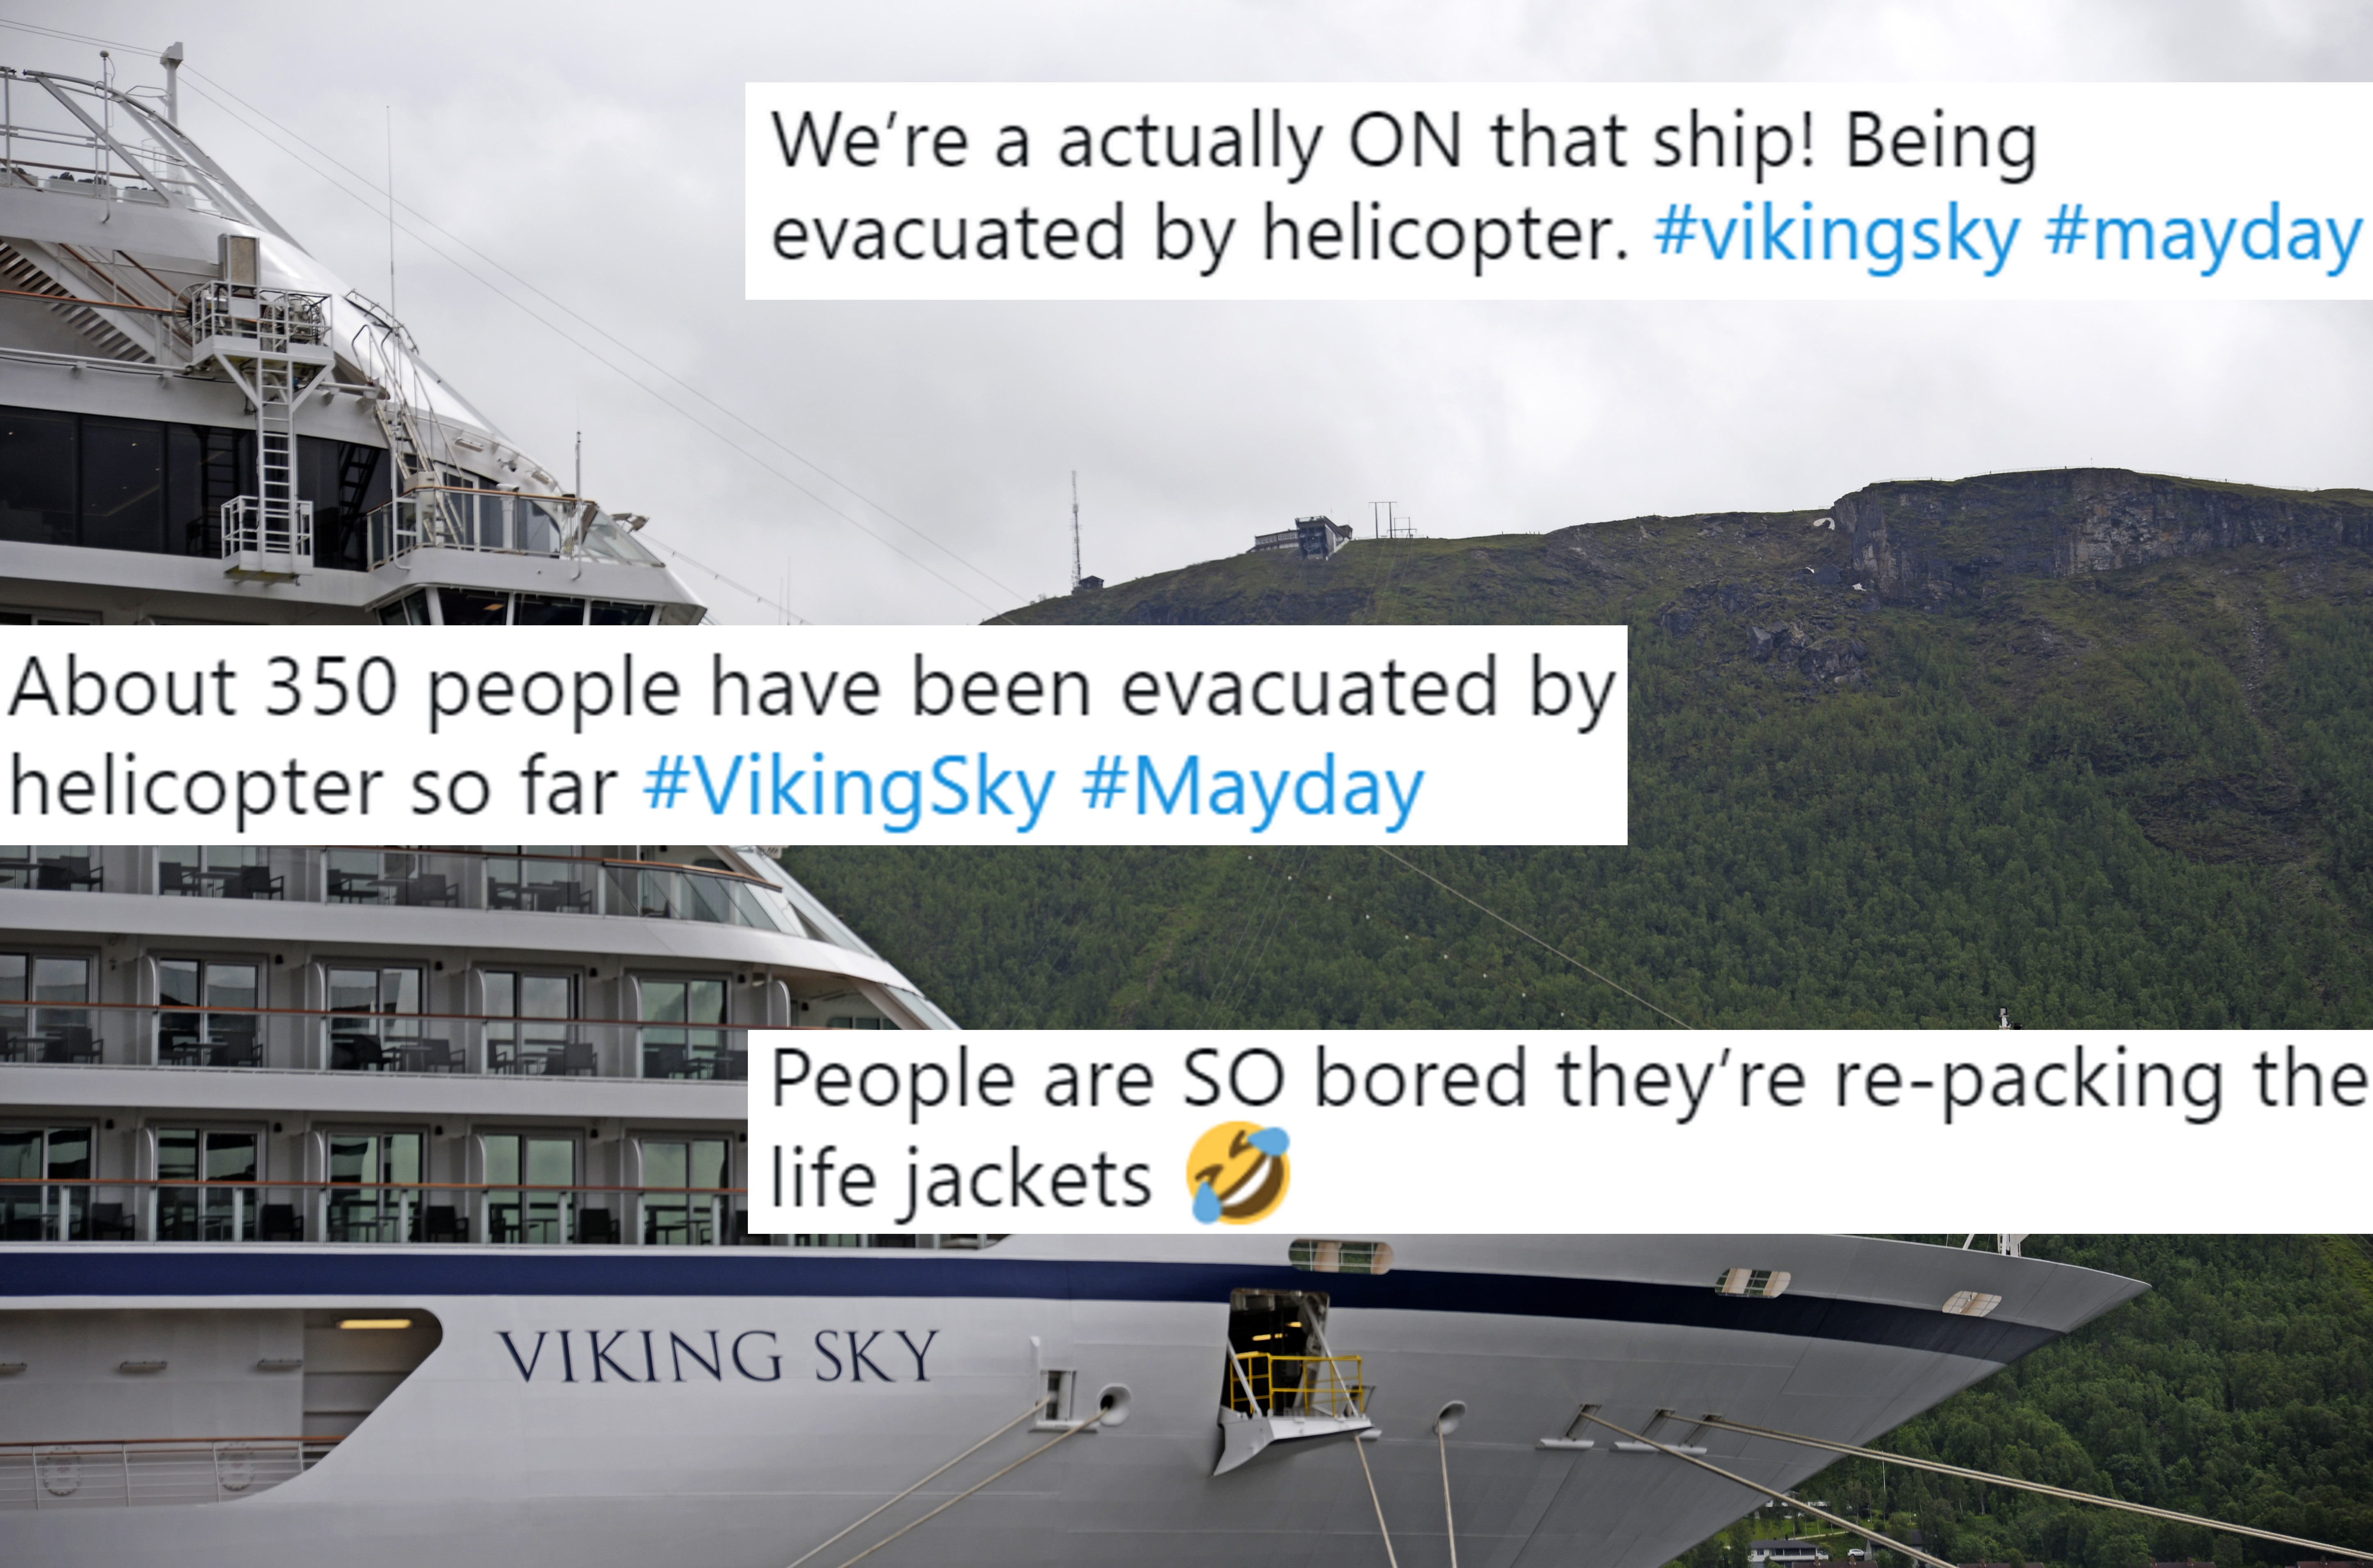 This picture taken on June 28, 2018 shows the cruise ship Viking Sky near Tromso, Norway. - Emergency services said on March 23, 2019 they were airlifting 1,300 passengers off a cruise ship off the Norwegian coast. The Viking Sky cruise ship sent an SOS message due to 'engine problems in bad weather', southern Norway's rescue centre said on Twitter, while police reported the passengers would be evacuated by helicopter. The photo is overlaid with tweets.